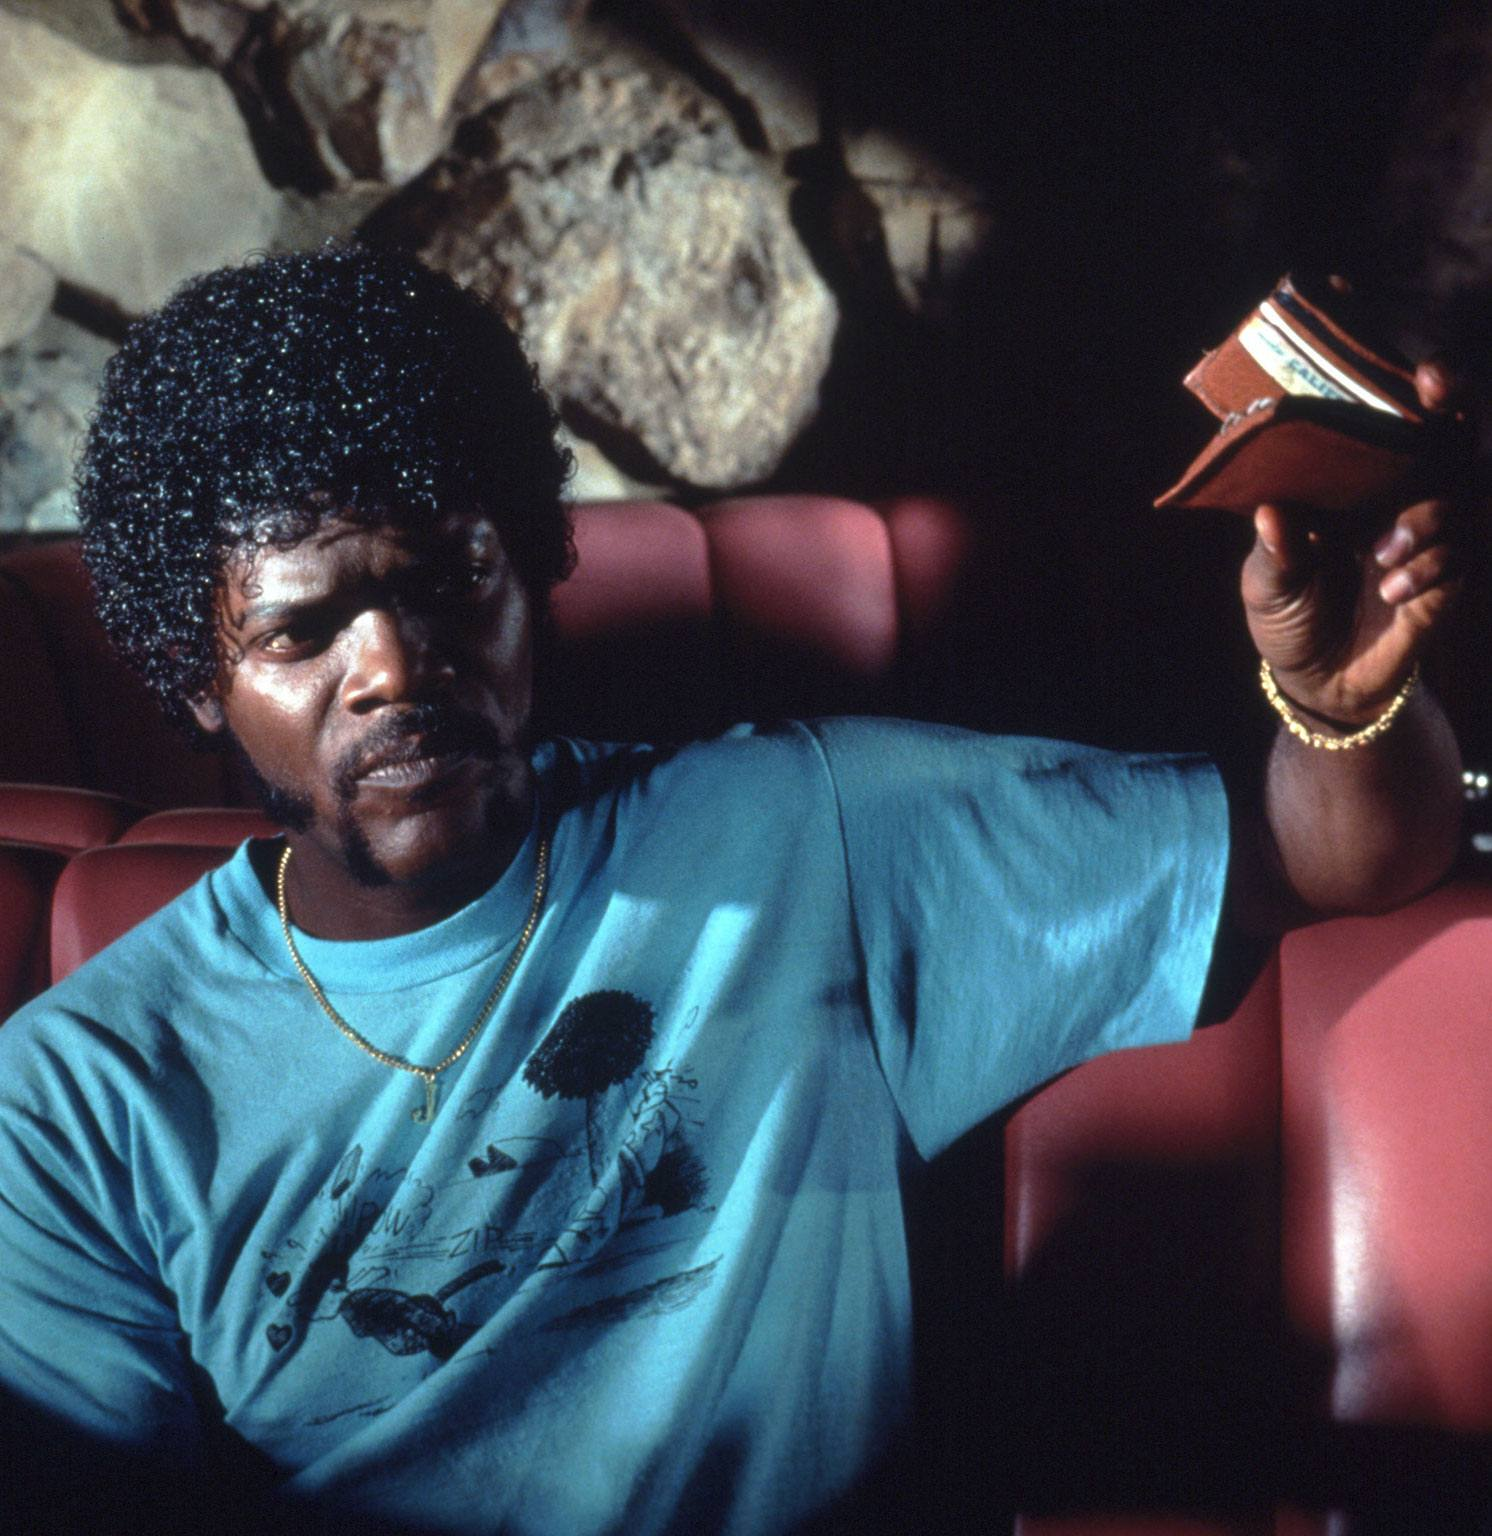 pulp fiction 2 7YkMr8Y 25 Things You Never Knew About Pulp Fiction